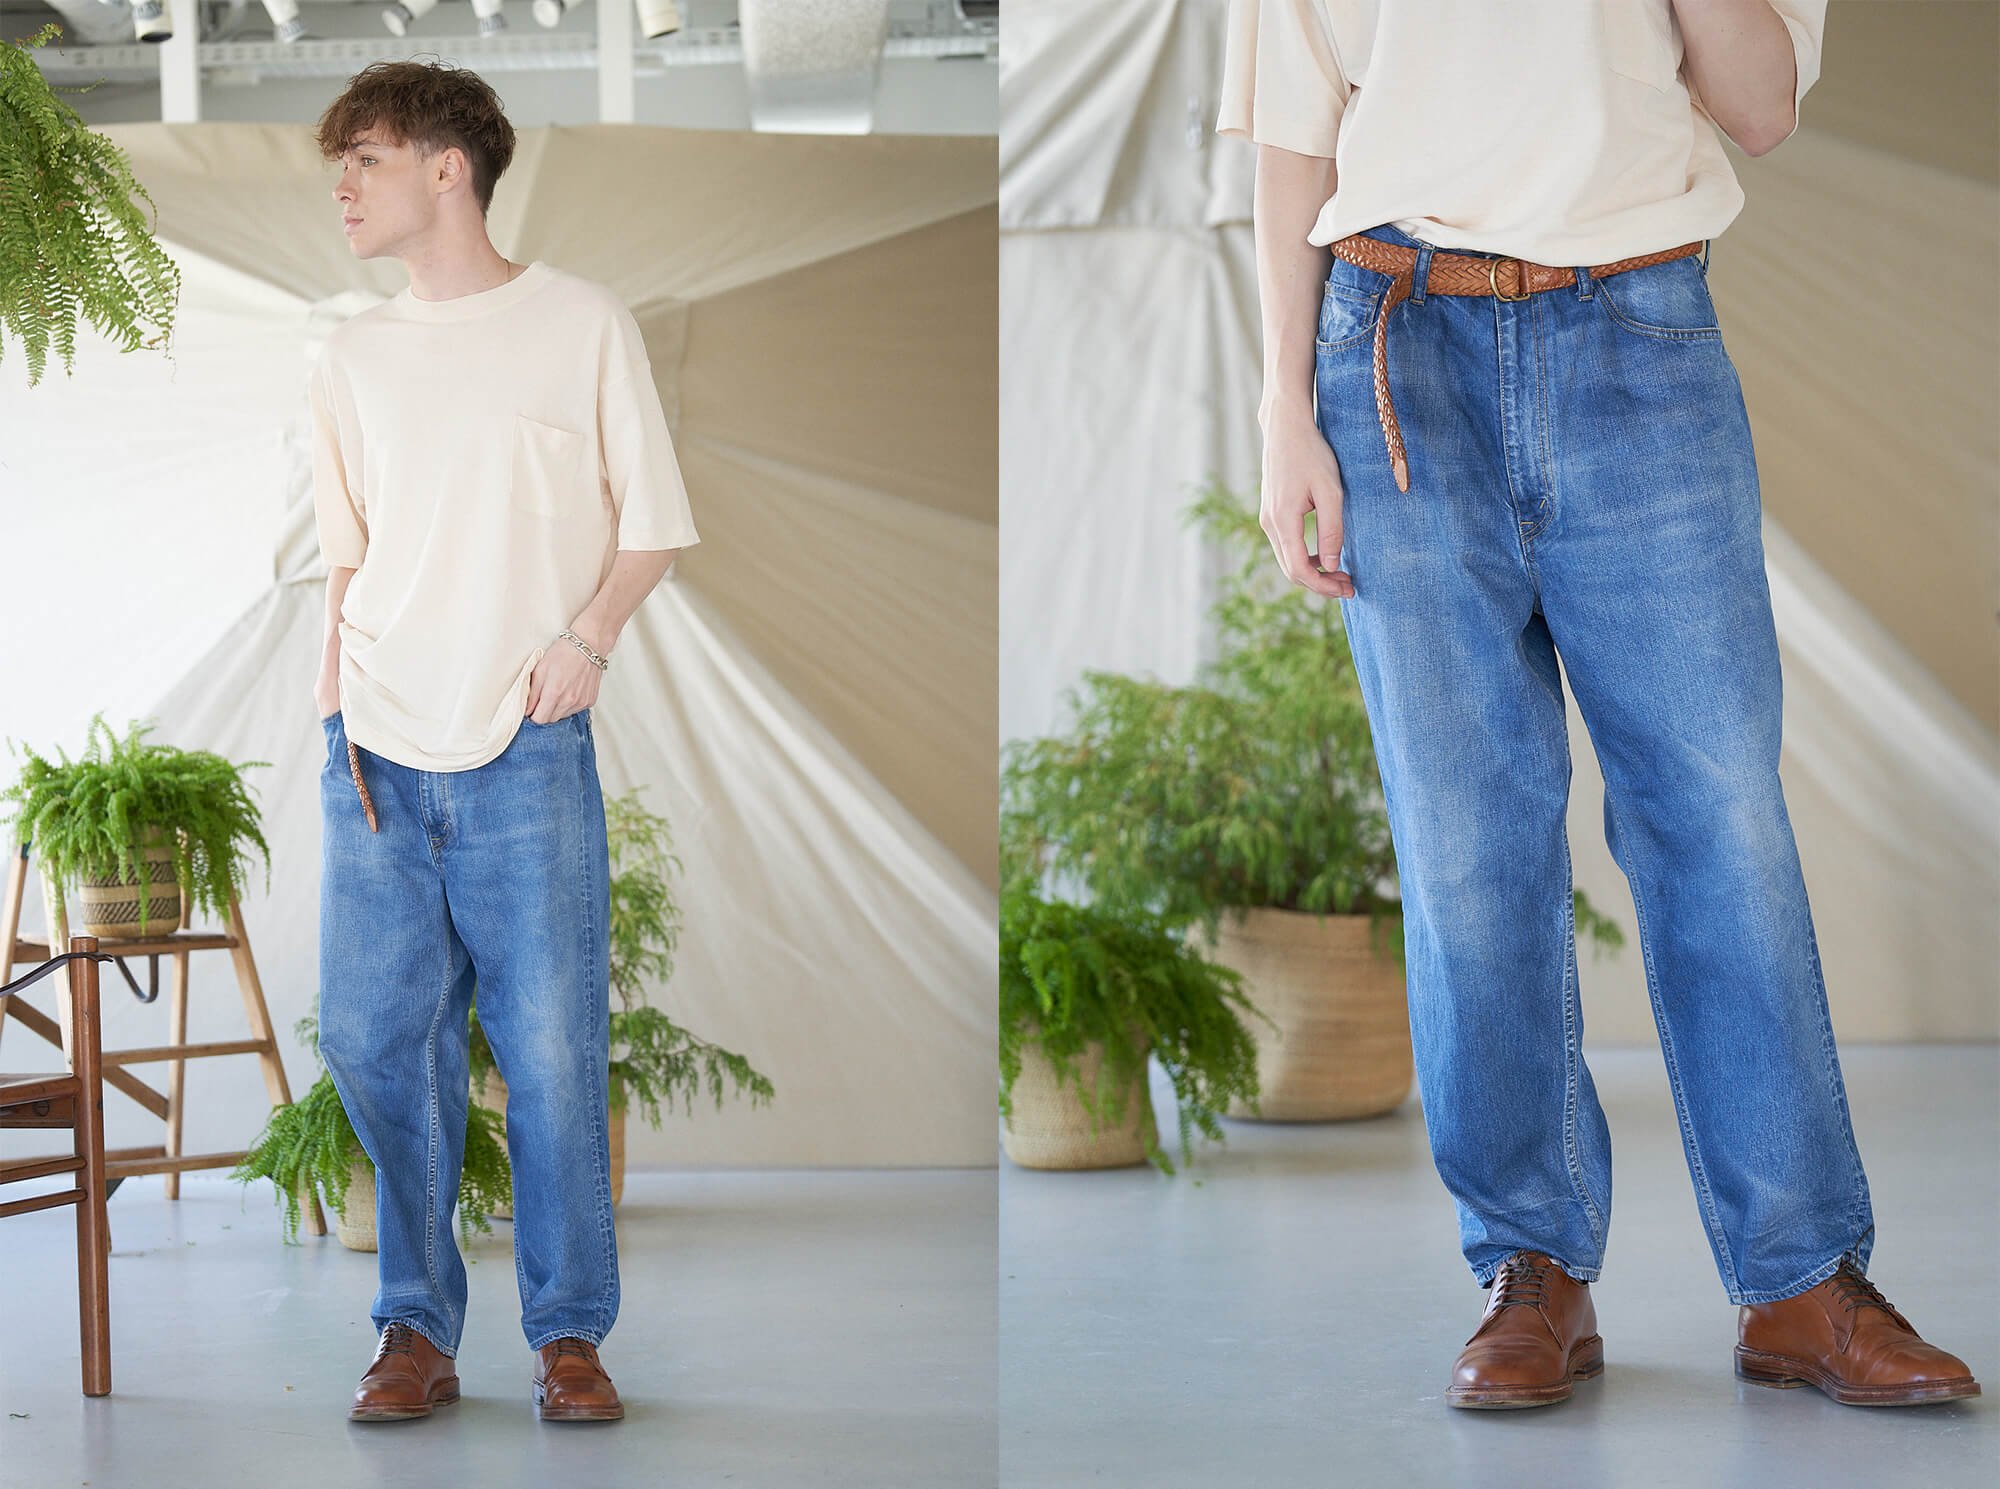 <img class='new_mark_img1' src='https://img.shop-pro.jp/img/new/icons14.gif' style='border:none;display:inline;margin:0px;padding:0px;width:auto;' />12oz cotton denim 5pocket wide tapered pants